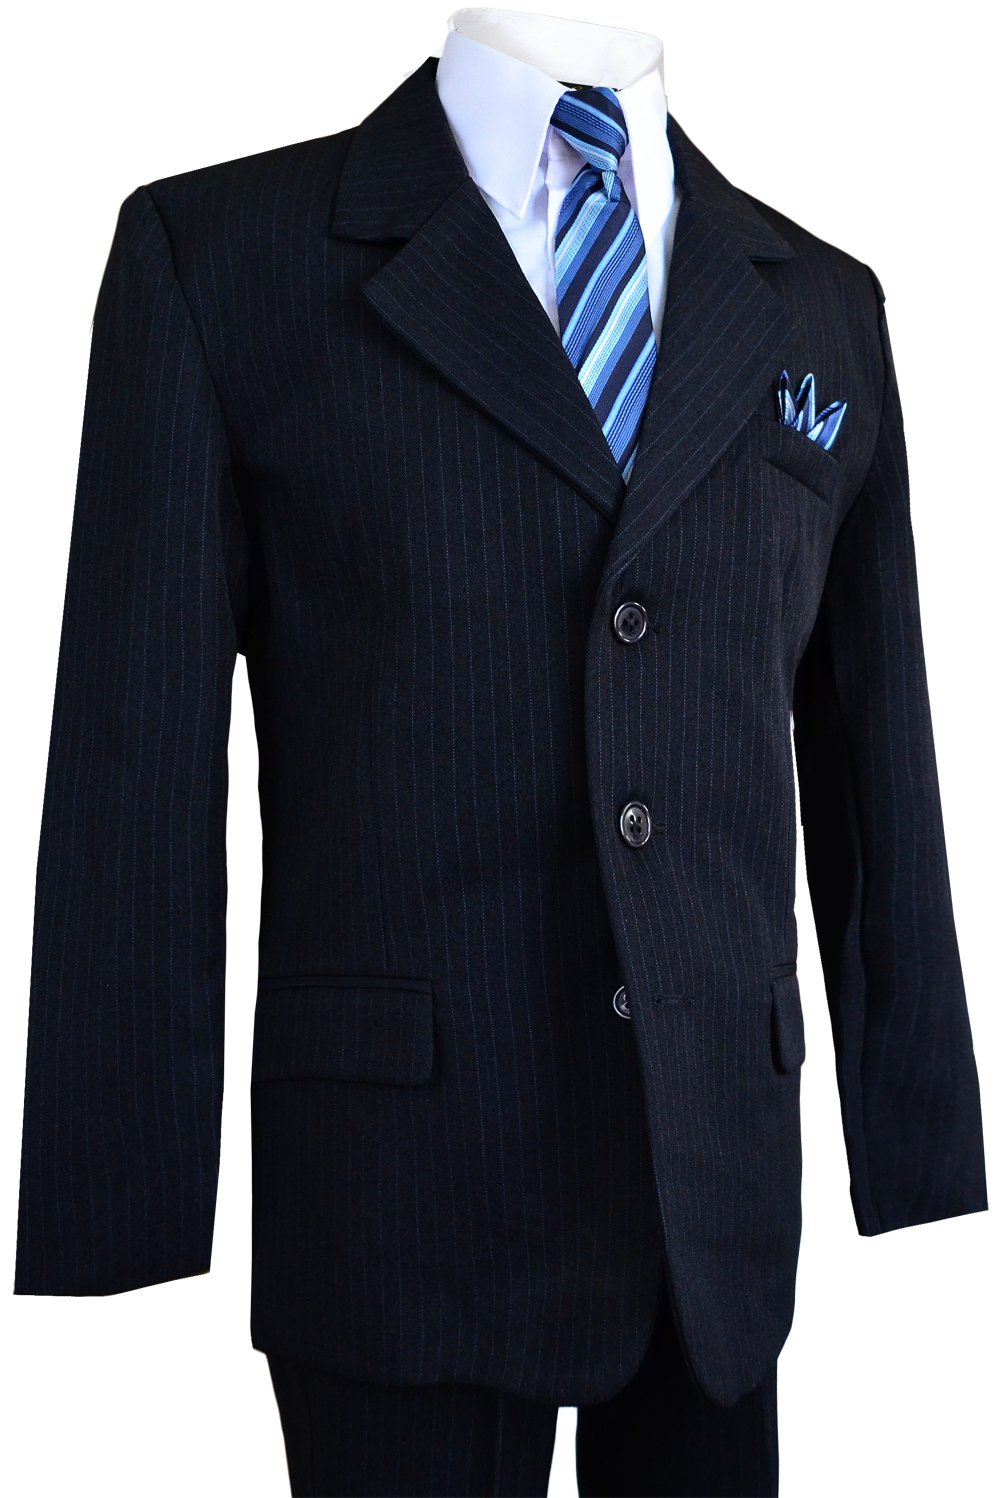 Boys Pinstripe Suit in Grey with Matching Tie Size 2-20 (3T, Dark Navy Blue)